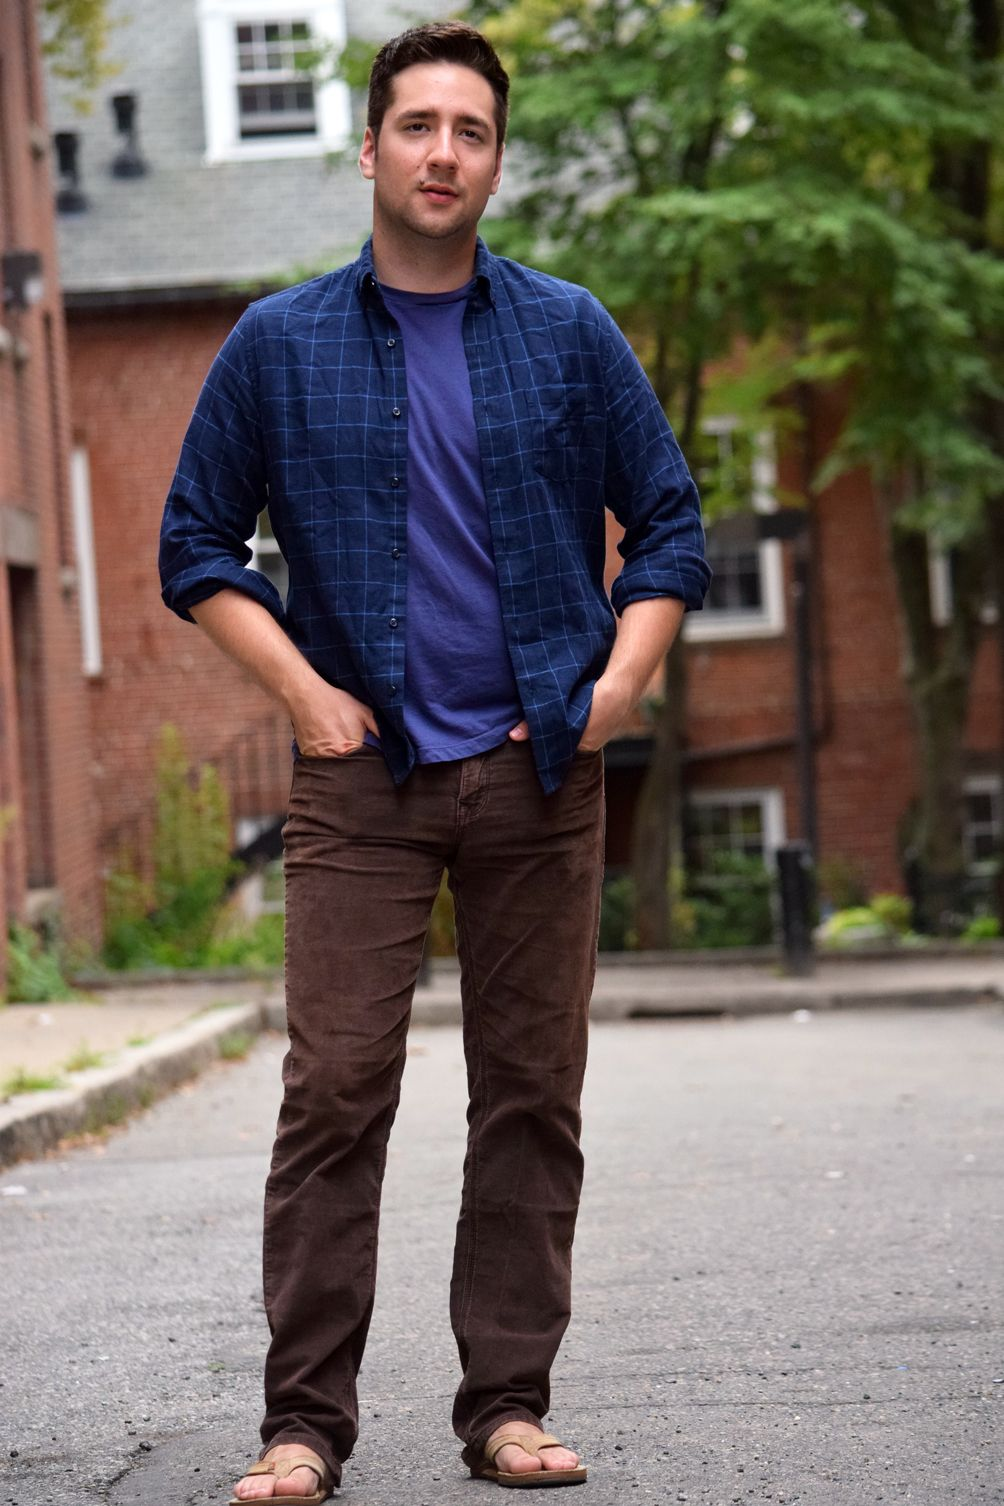 His Fall Fashion With Corduroys And Layers Fashion Mens Tops Fashion Beauty